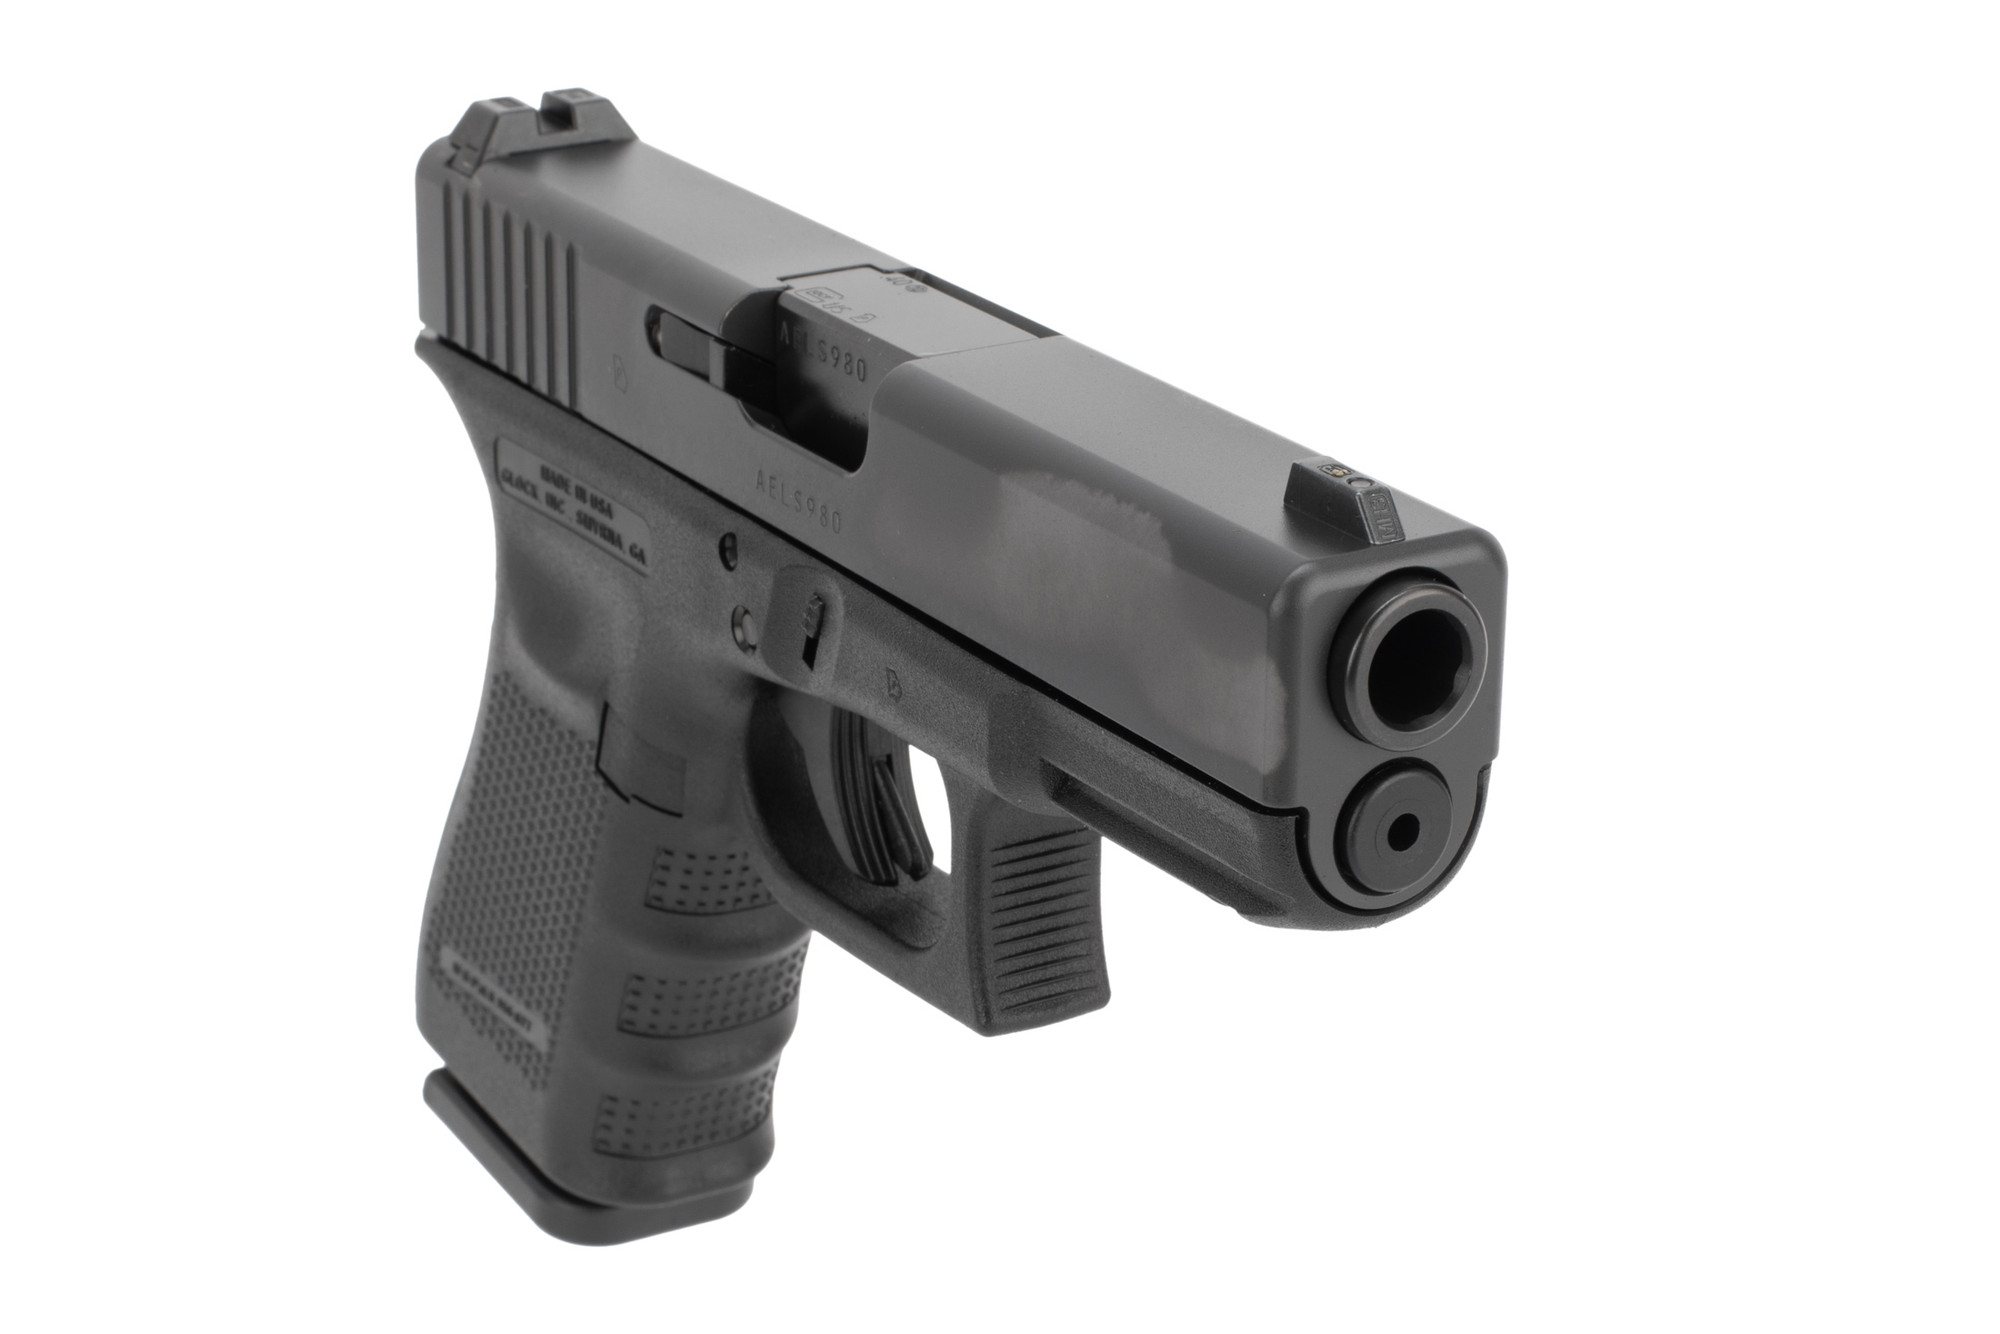 Glock 23 Blue Label Pistol is chambered in 40 S&Ws